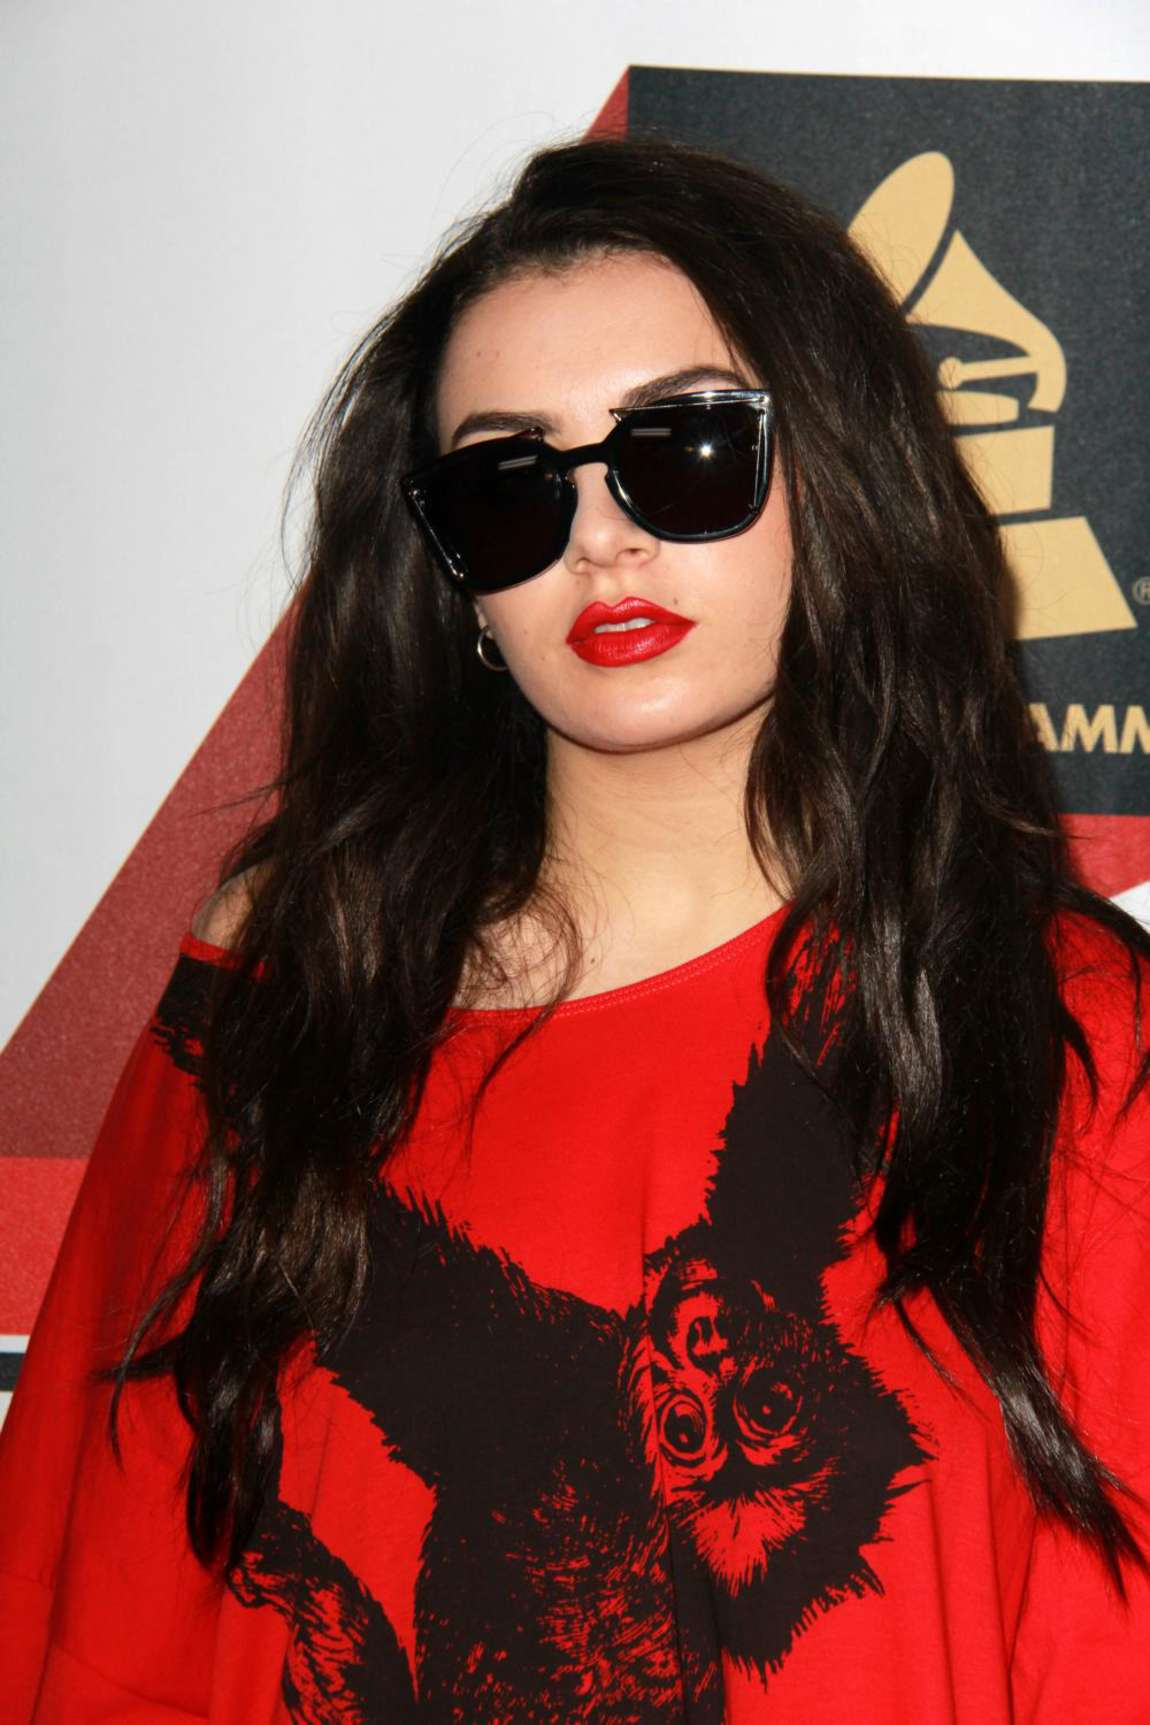 Charli xcx grammys radio row day 2 event in los angeles for Lindsay aitchison